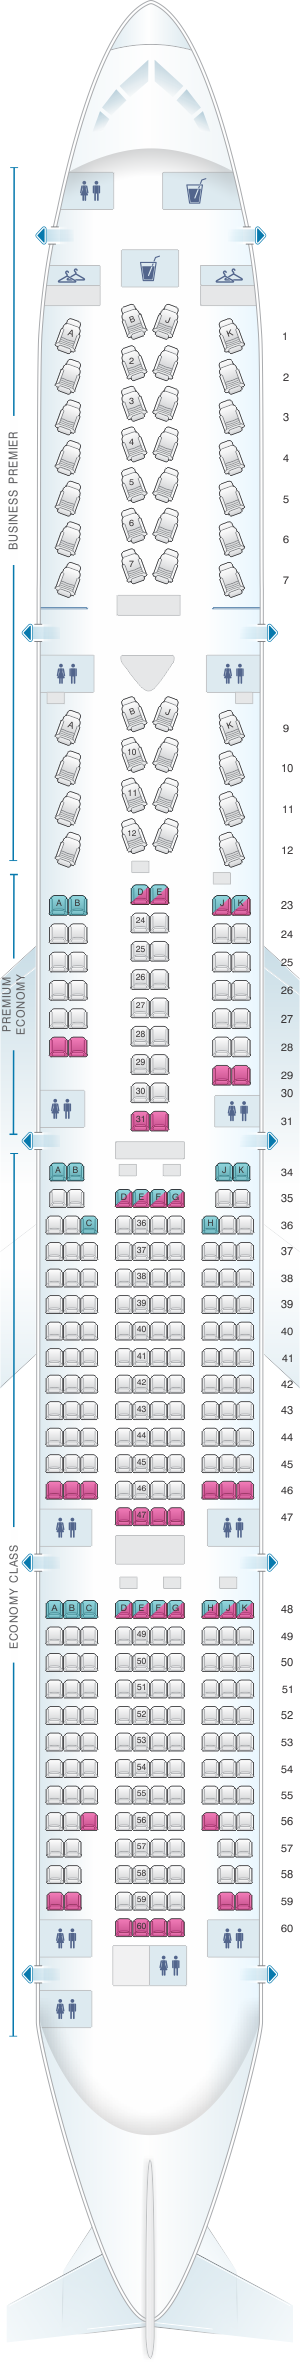 Seat map for Air New Zealand Boeing B777 300